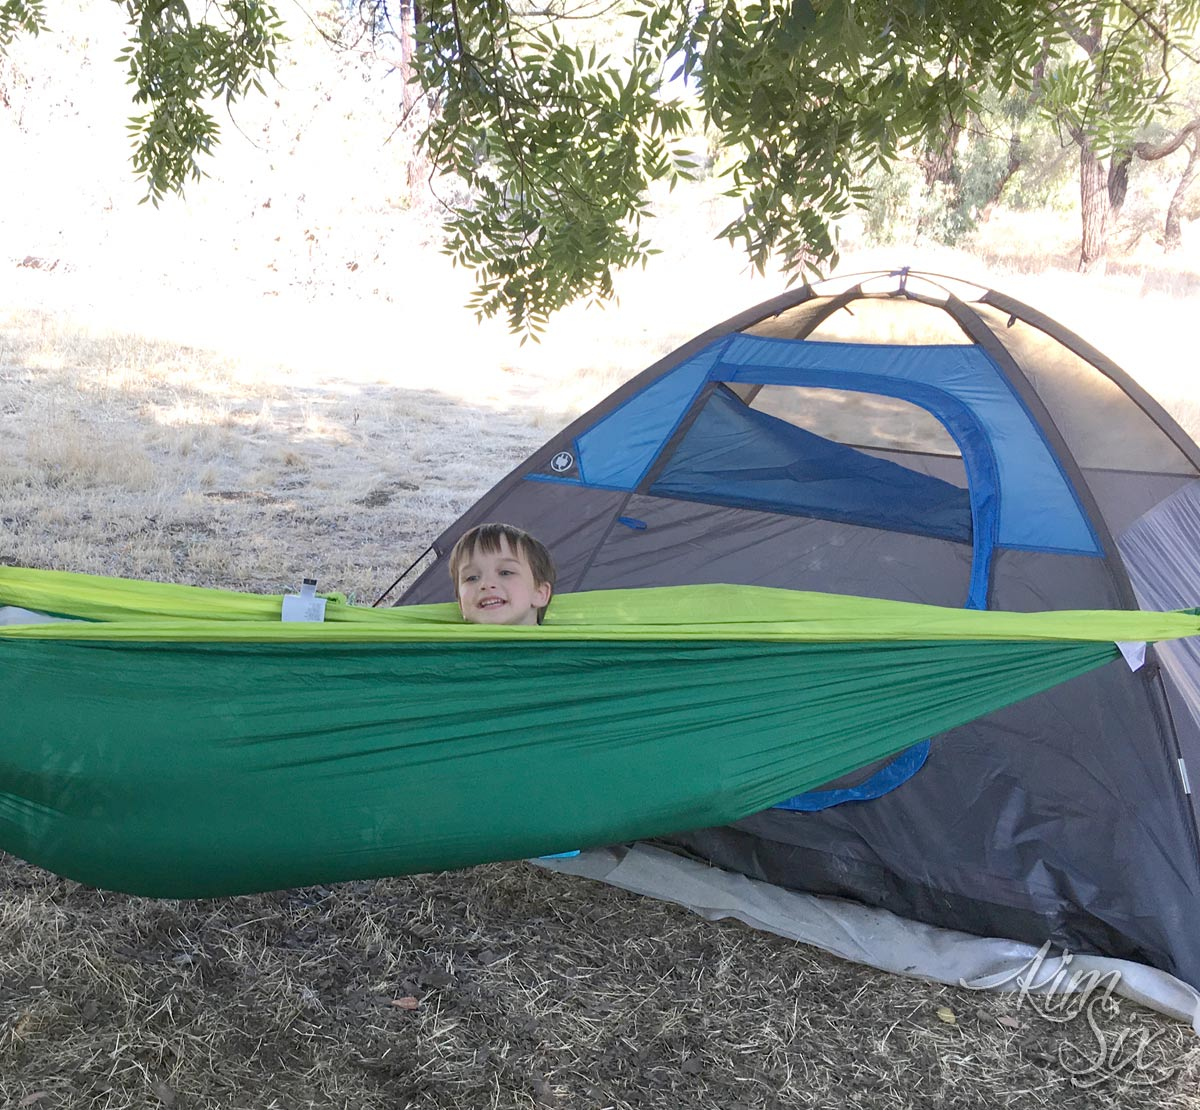 Using a hammock while camping